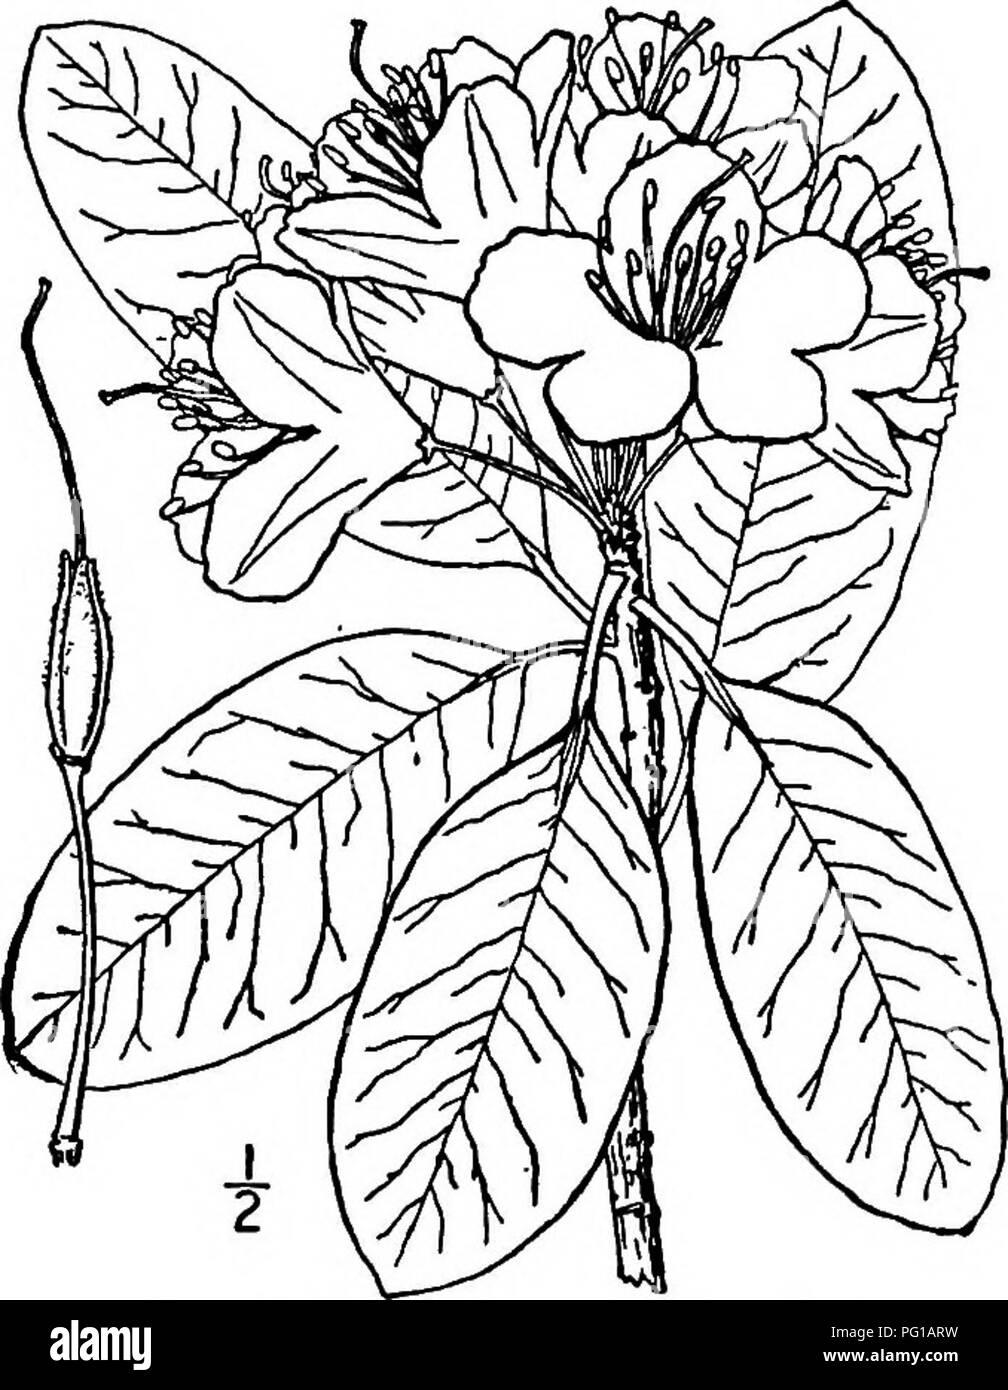 . North American trees : being descriptions and illustrations of the trees growing independently of cultivation in North America, north of Mexico and the West Indies . Trees. Fig. 688. — Mountain Rose Bay. 2. MOUNTAIN ROSE BAY Rhododendron catawbiense Michaux This evergreen shrub, sometimes be- comes a small tree, and is also called Catawba Rhododendron and Carolina Rho- dodendron. It occurs mostly on moun- tain sides and summits, from Virginia and West Virginia to Georgia and Alabama, attaining a maximum height of 6 meters, with a trunk diameter of i dm. The trunk is short, crooked, and much  Stock Photo